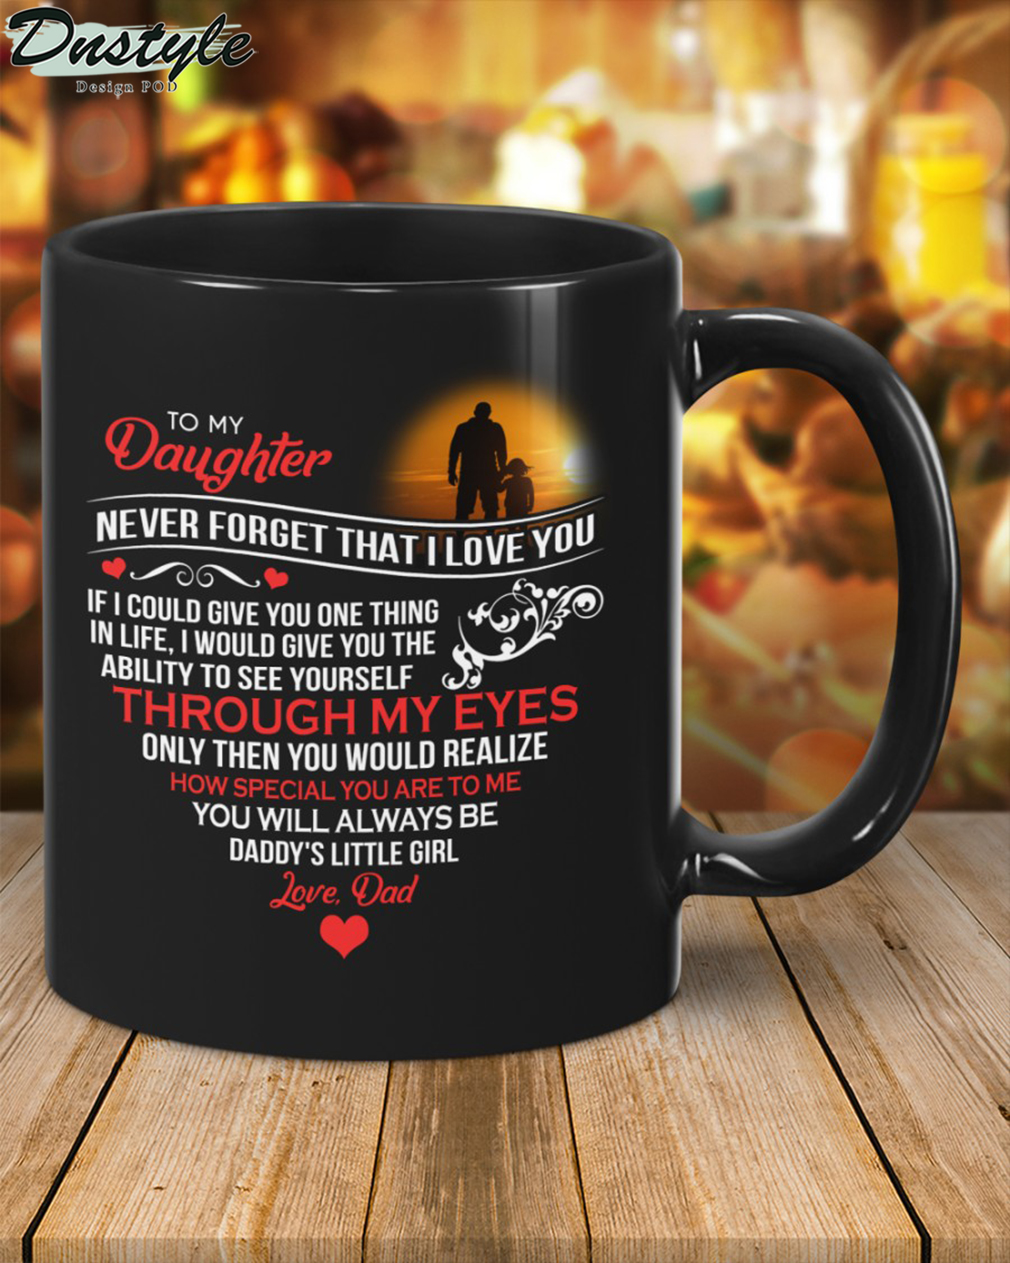 To my daughter never forget that I love you dad black mug 1